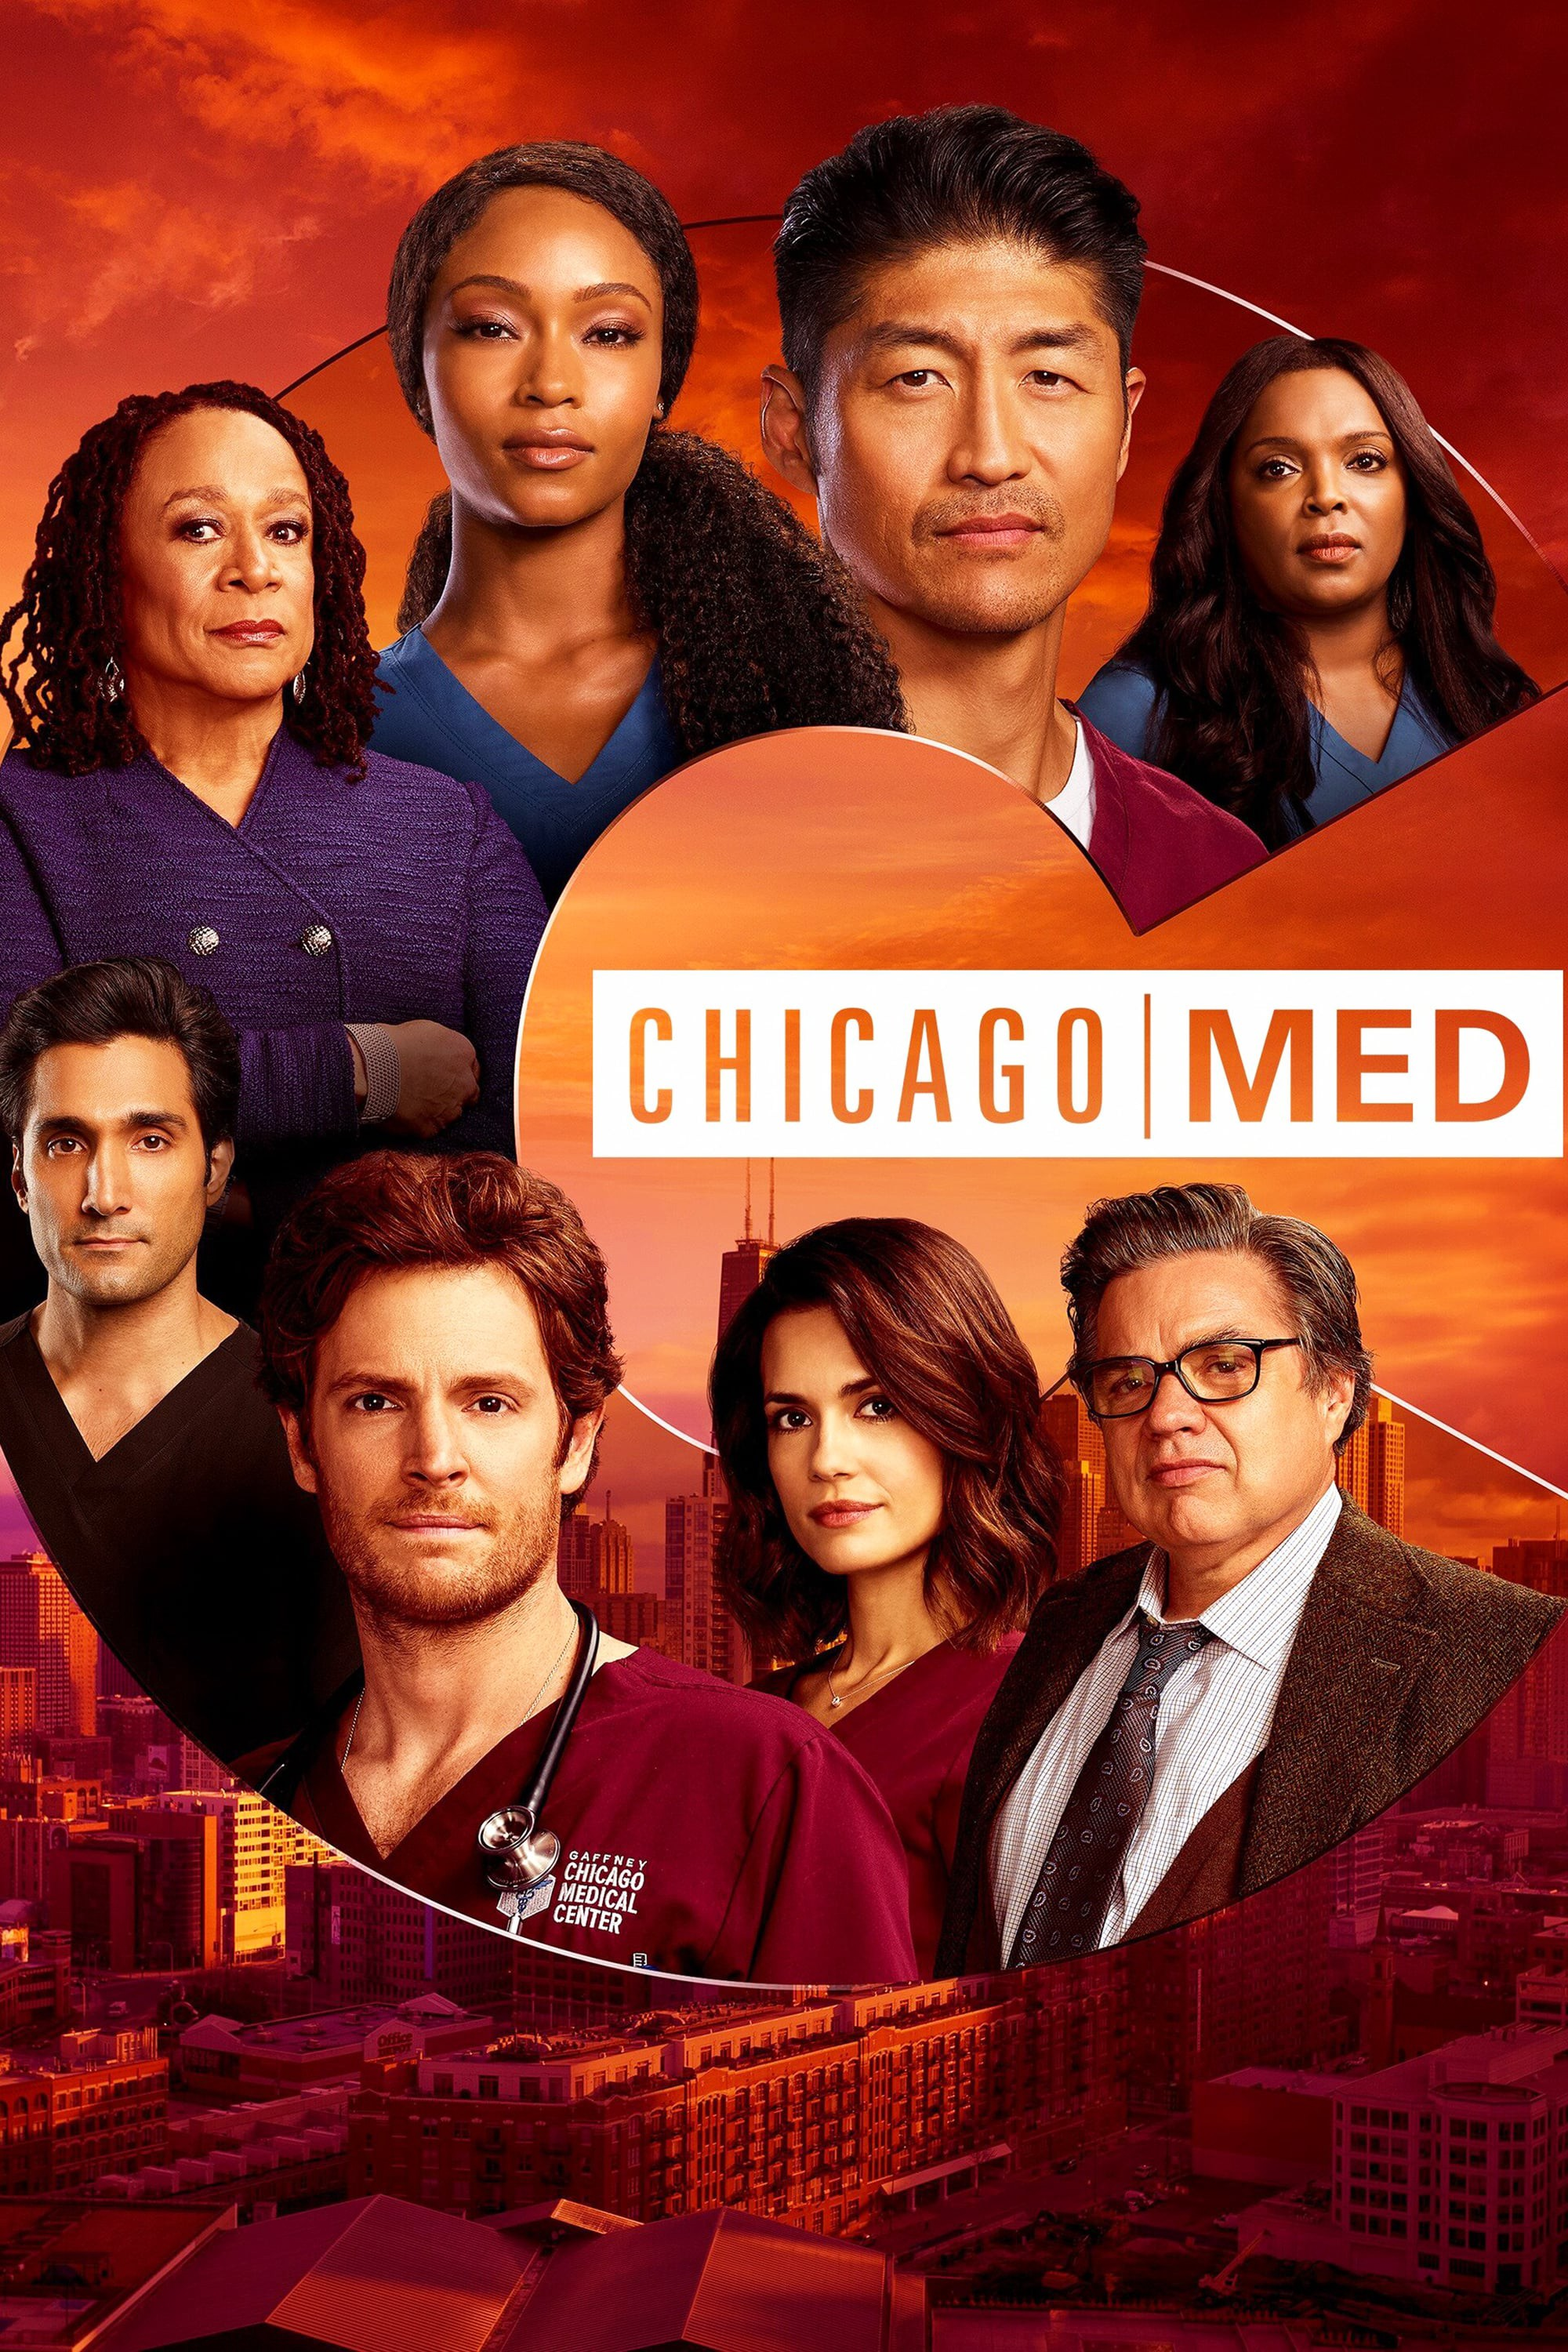 Chicago Med - Season 6 Episode 4 - In Search of Forgiveness, Not Permission